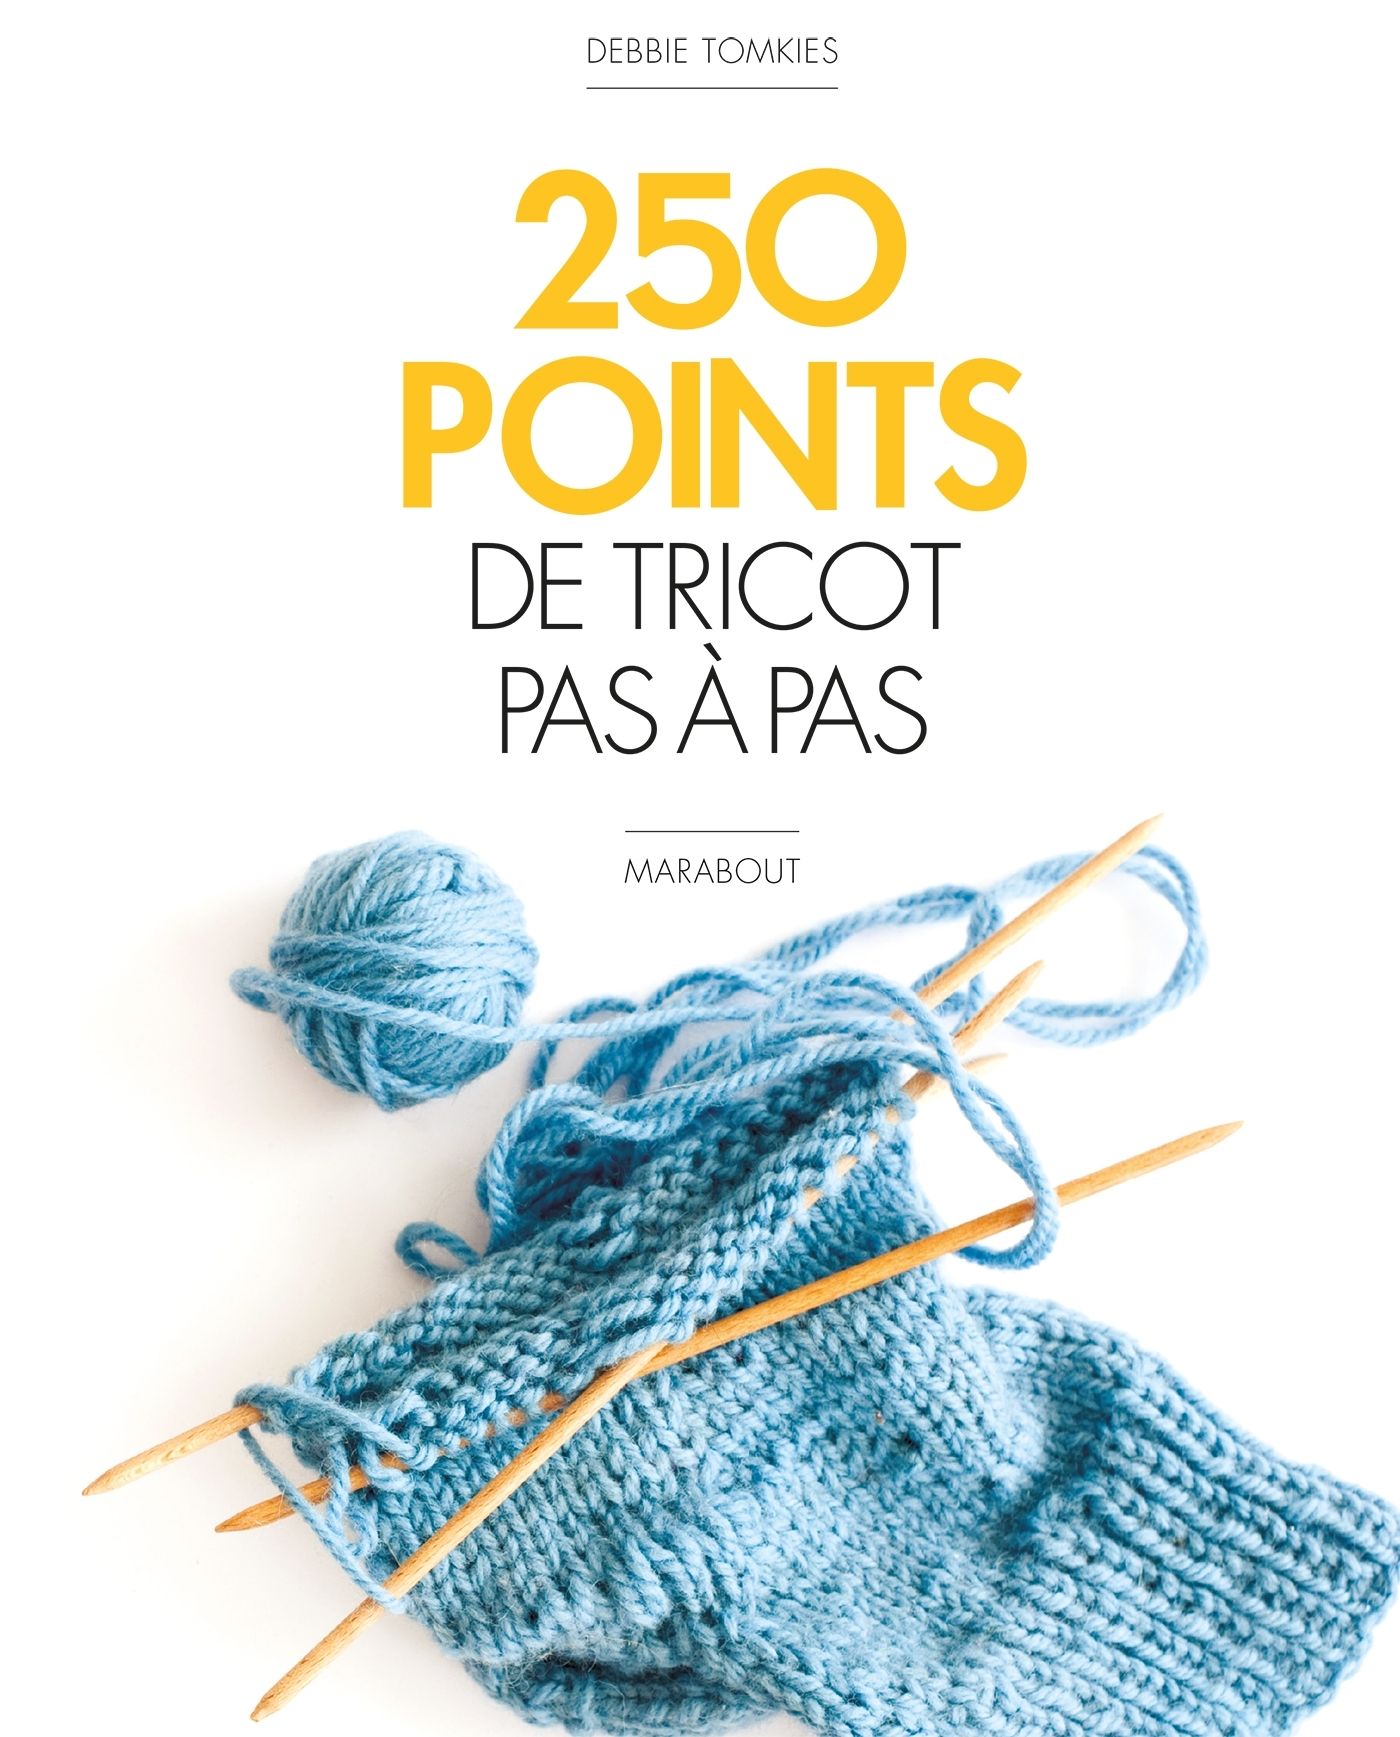 250 POINTS DE TRICOT PAS A PAS